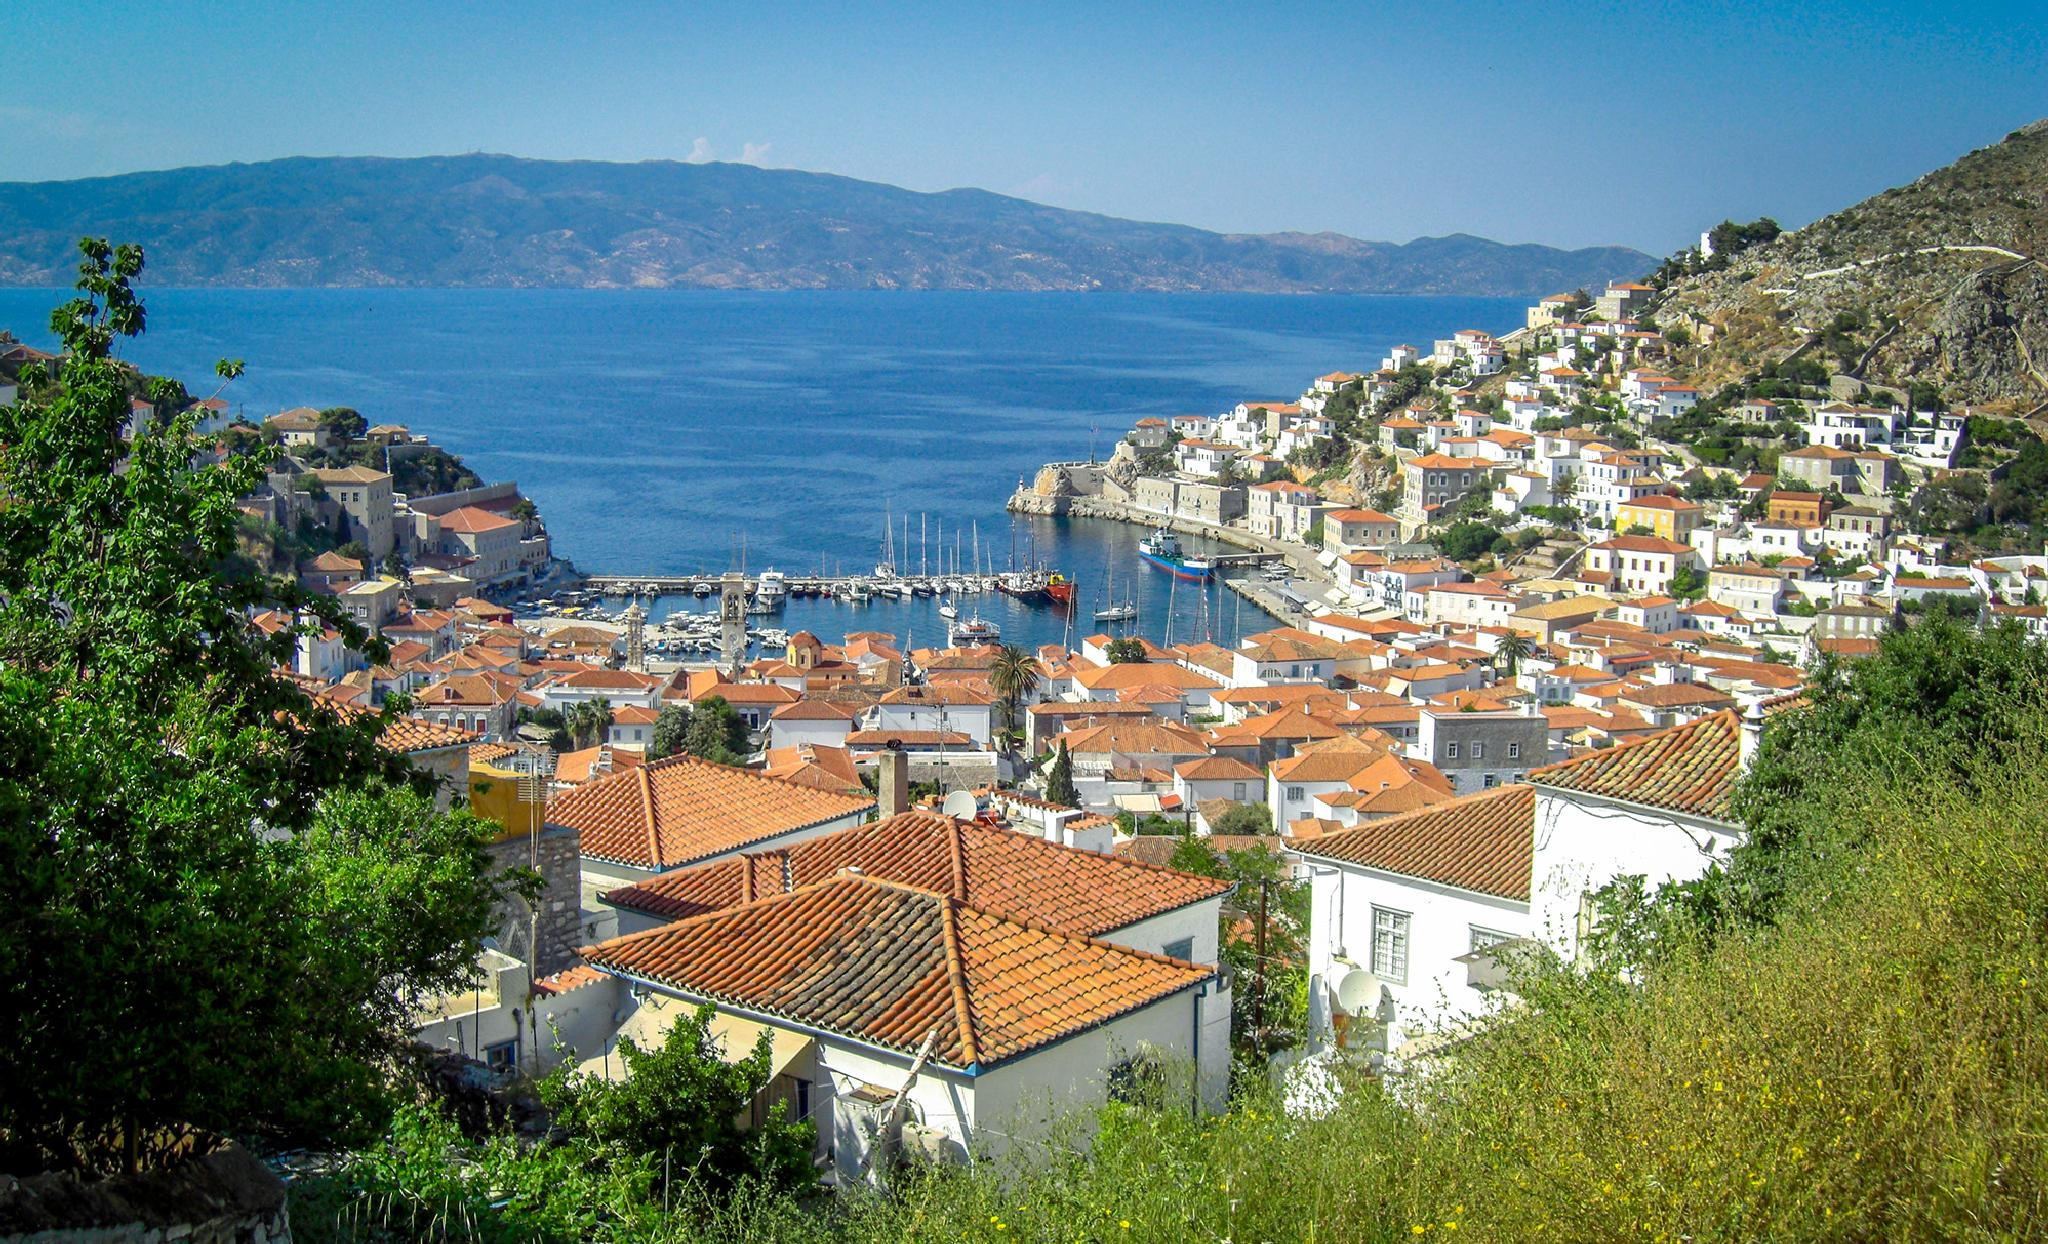 Port of Hydra from Above by tedurquhart1